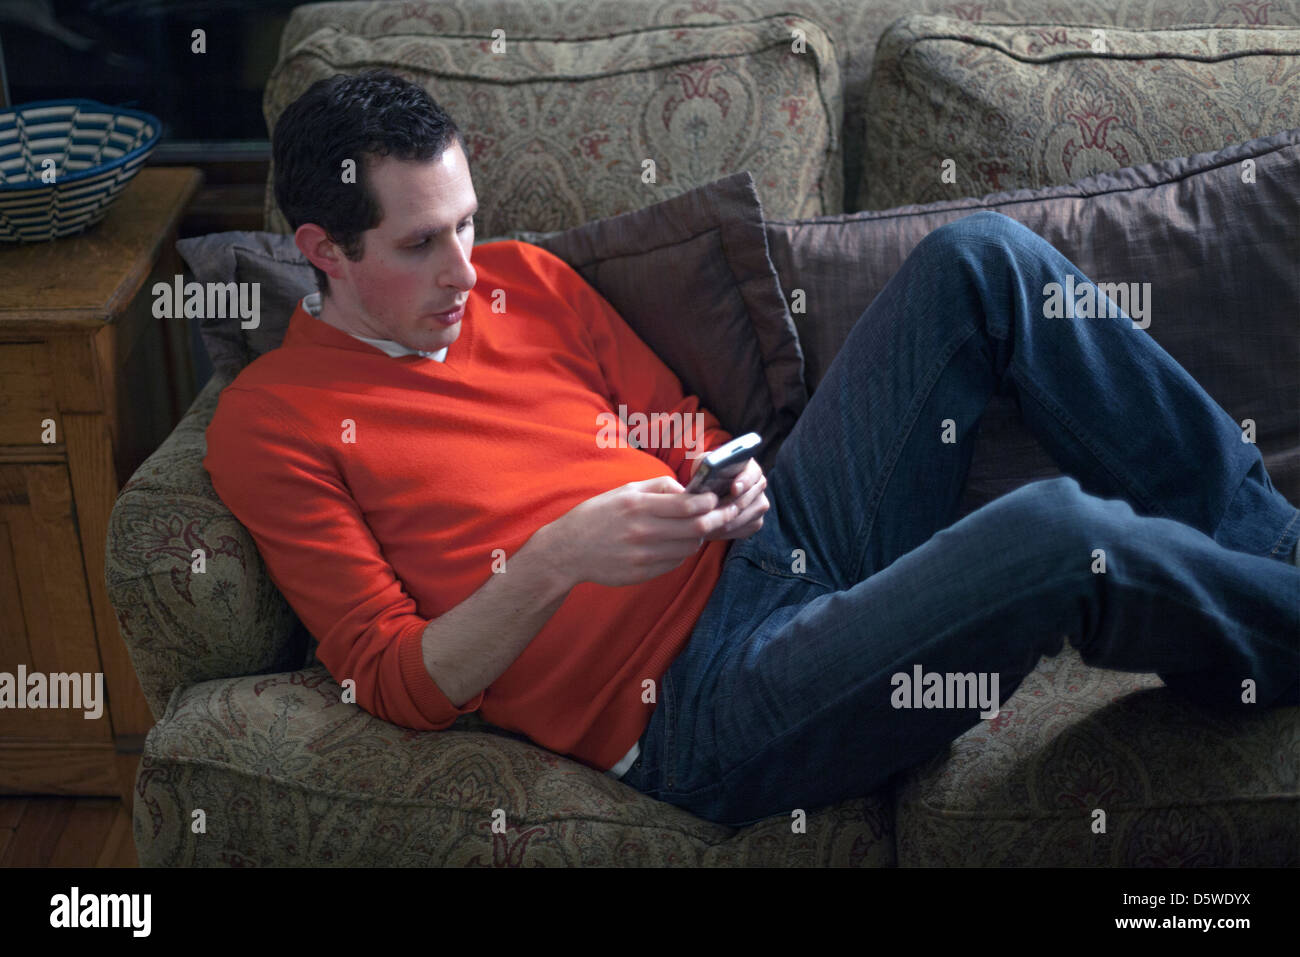 A man checks his e-mail on his mobile device in his living room. - Stock Image